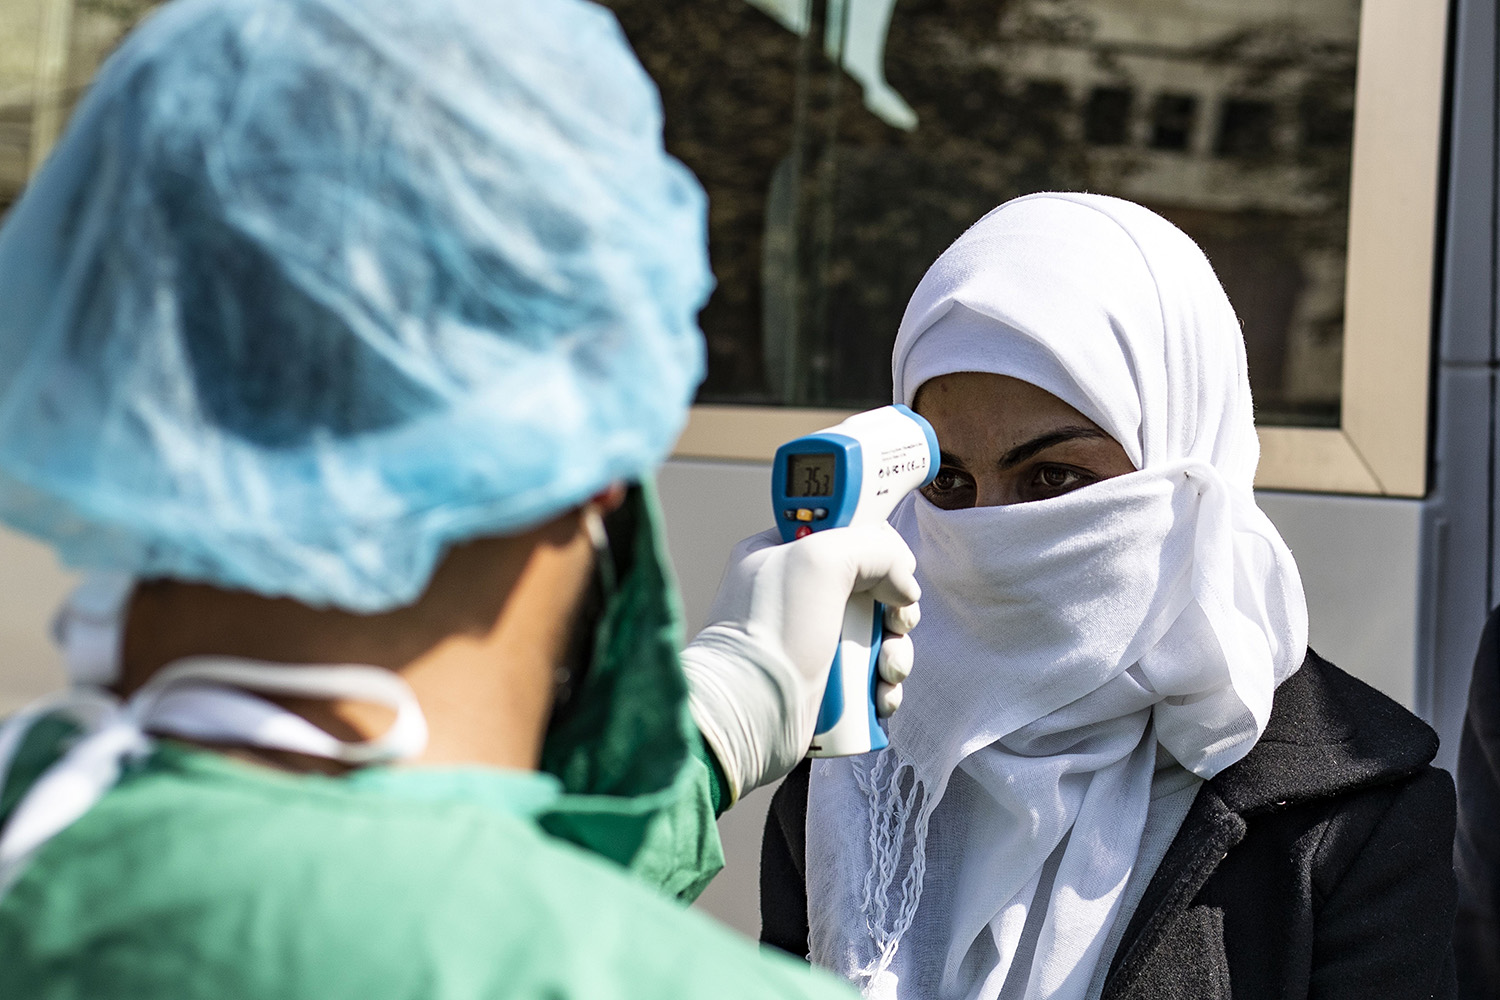 A medic checks the body temperature of a passenger, as a preventive measure against the coronavirus, upon her arrival by bus in Syria's Kurdish area from Iraqi Kurdistan via the Semalka border crossing in northeastern Syria on Feb. 26. DELIL SOULEIMAN/AFP via Getty Images